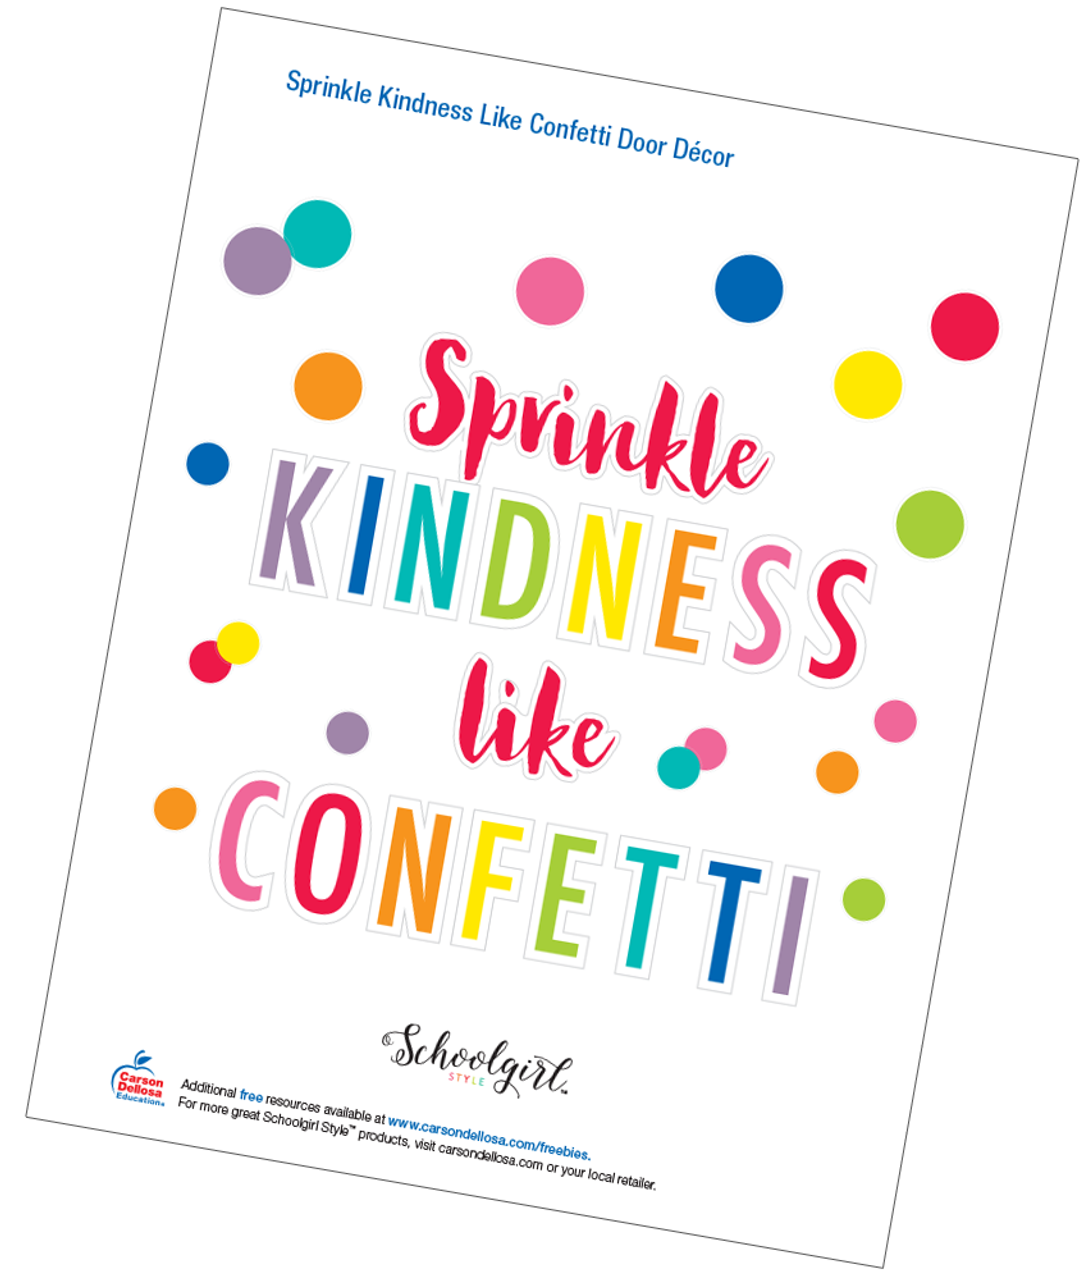 picture regarding Free Printable Decor identify Schoolgirl Design: Sprinkle Kindness Which include Confetti Doorway Décor